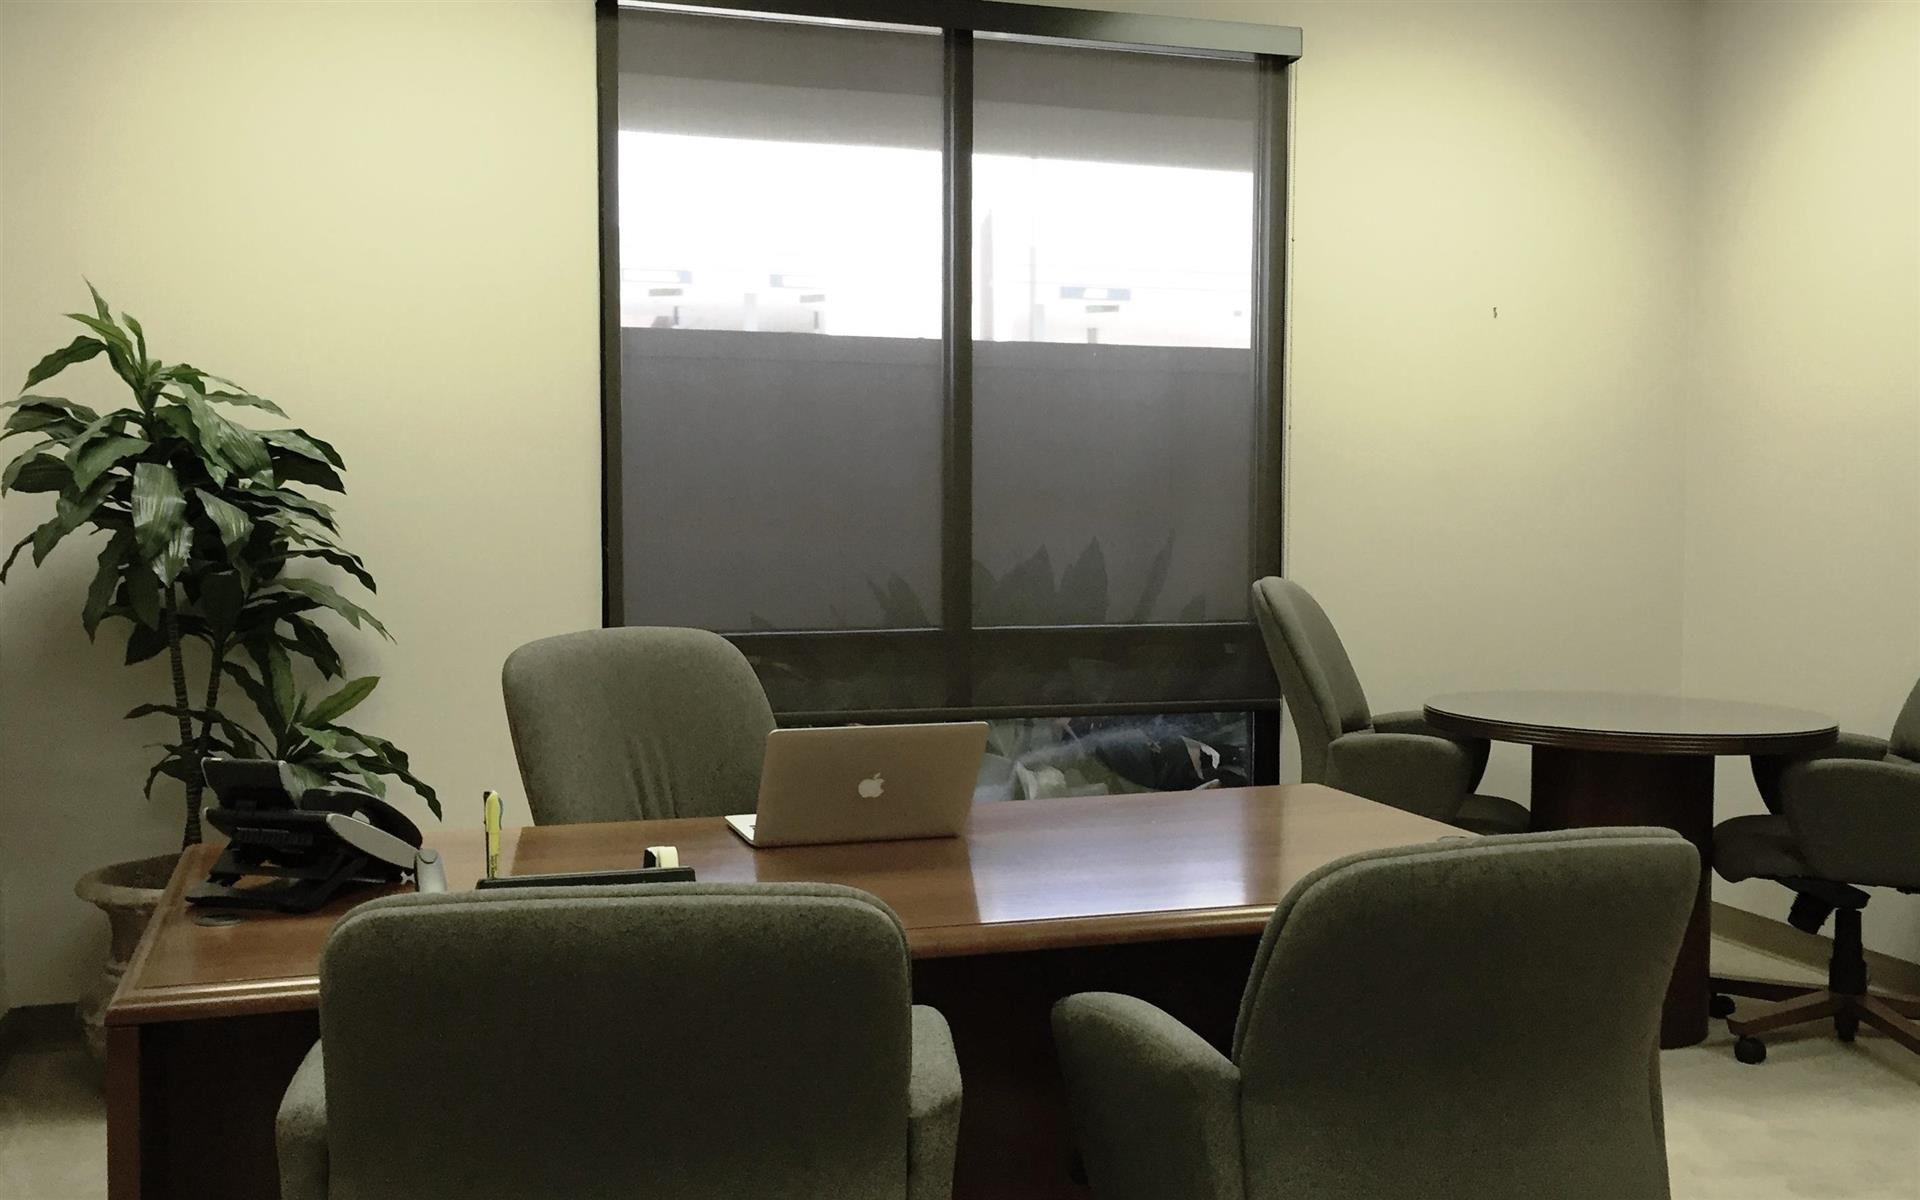 CreditRe Properties - Private On Demand Office